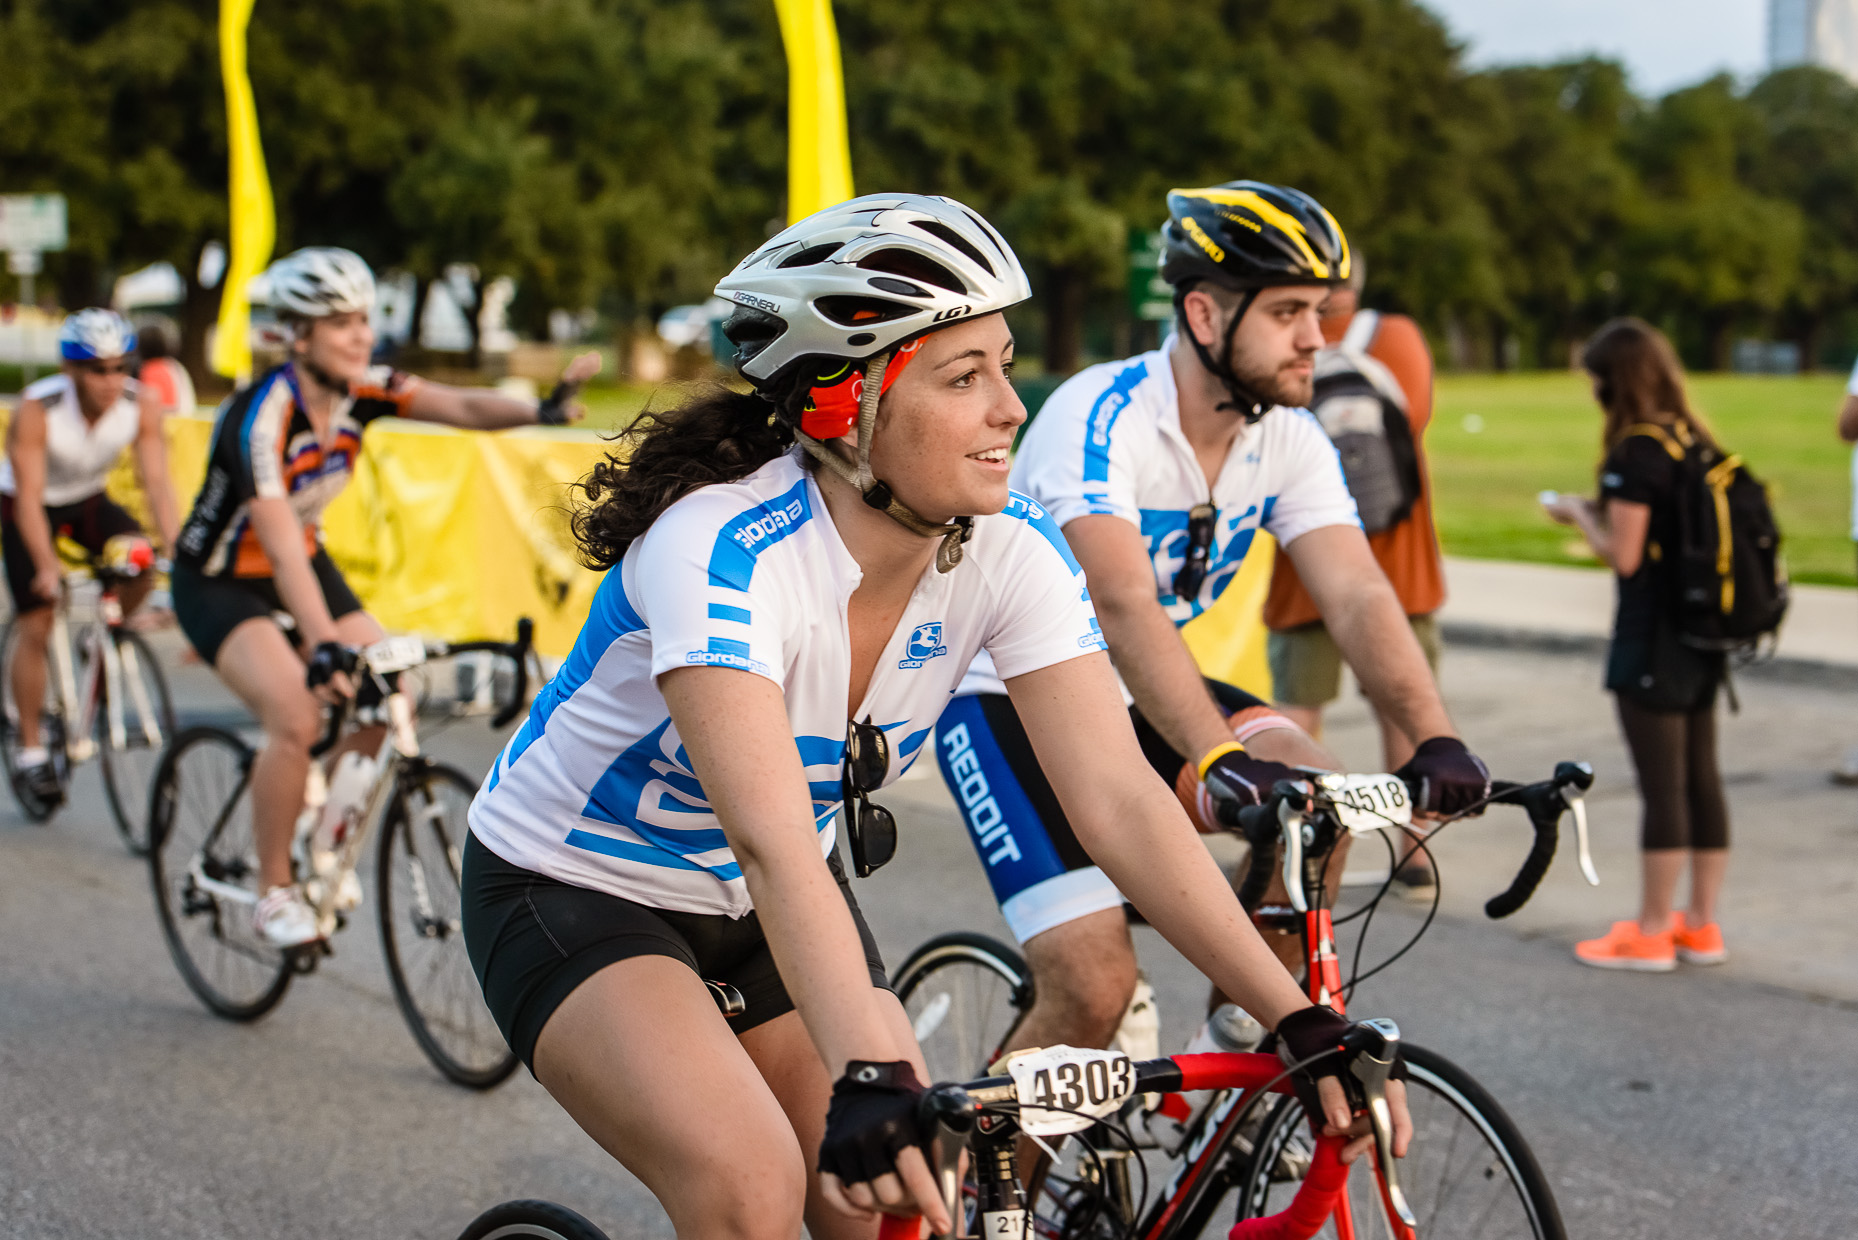 Livestrong-Challenge-Austin-Commercial-Photographer-car2go-bicyclists-ride.jpg